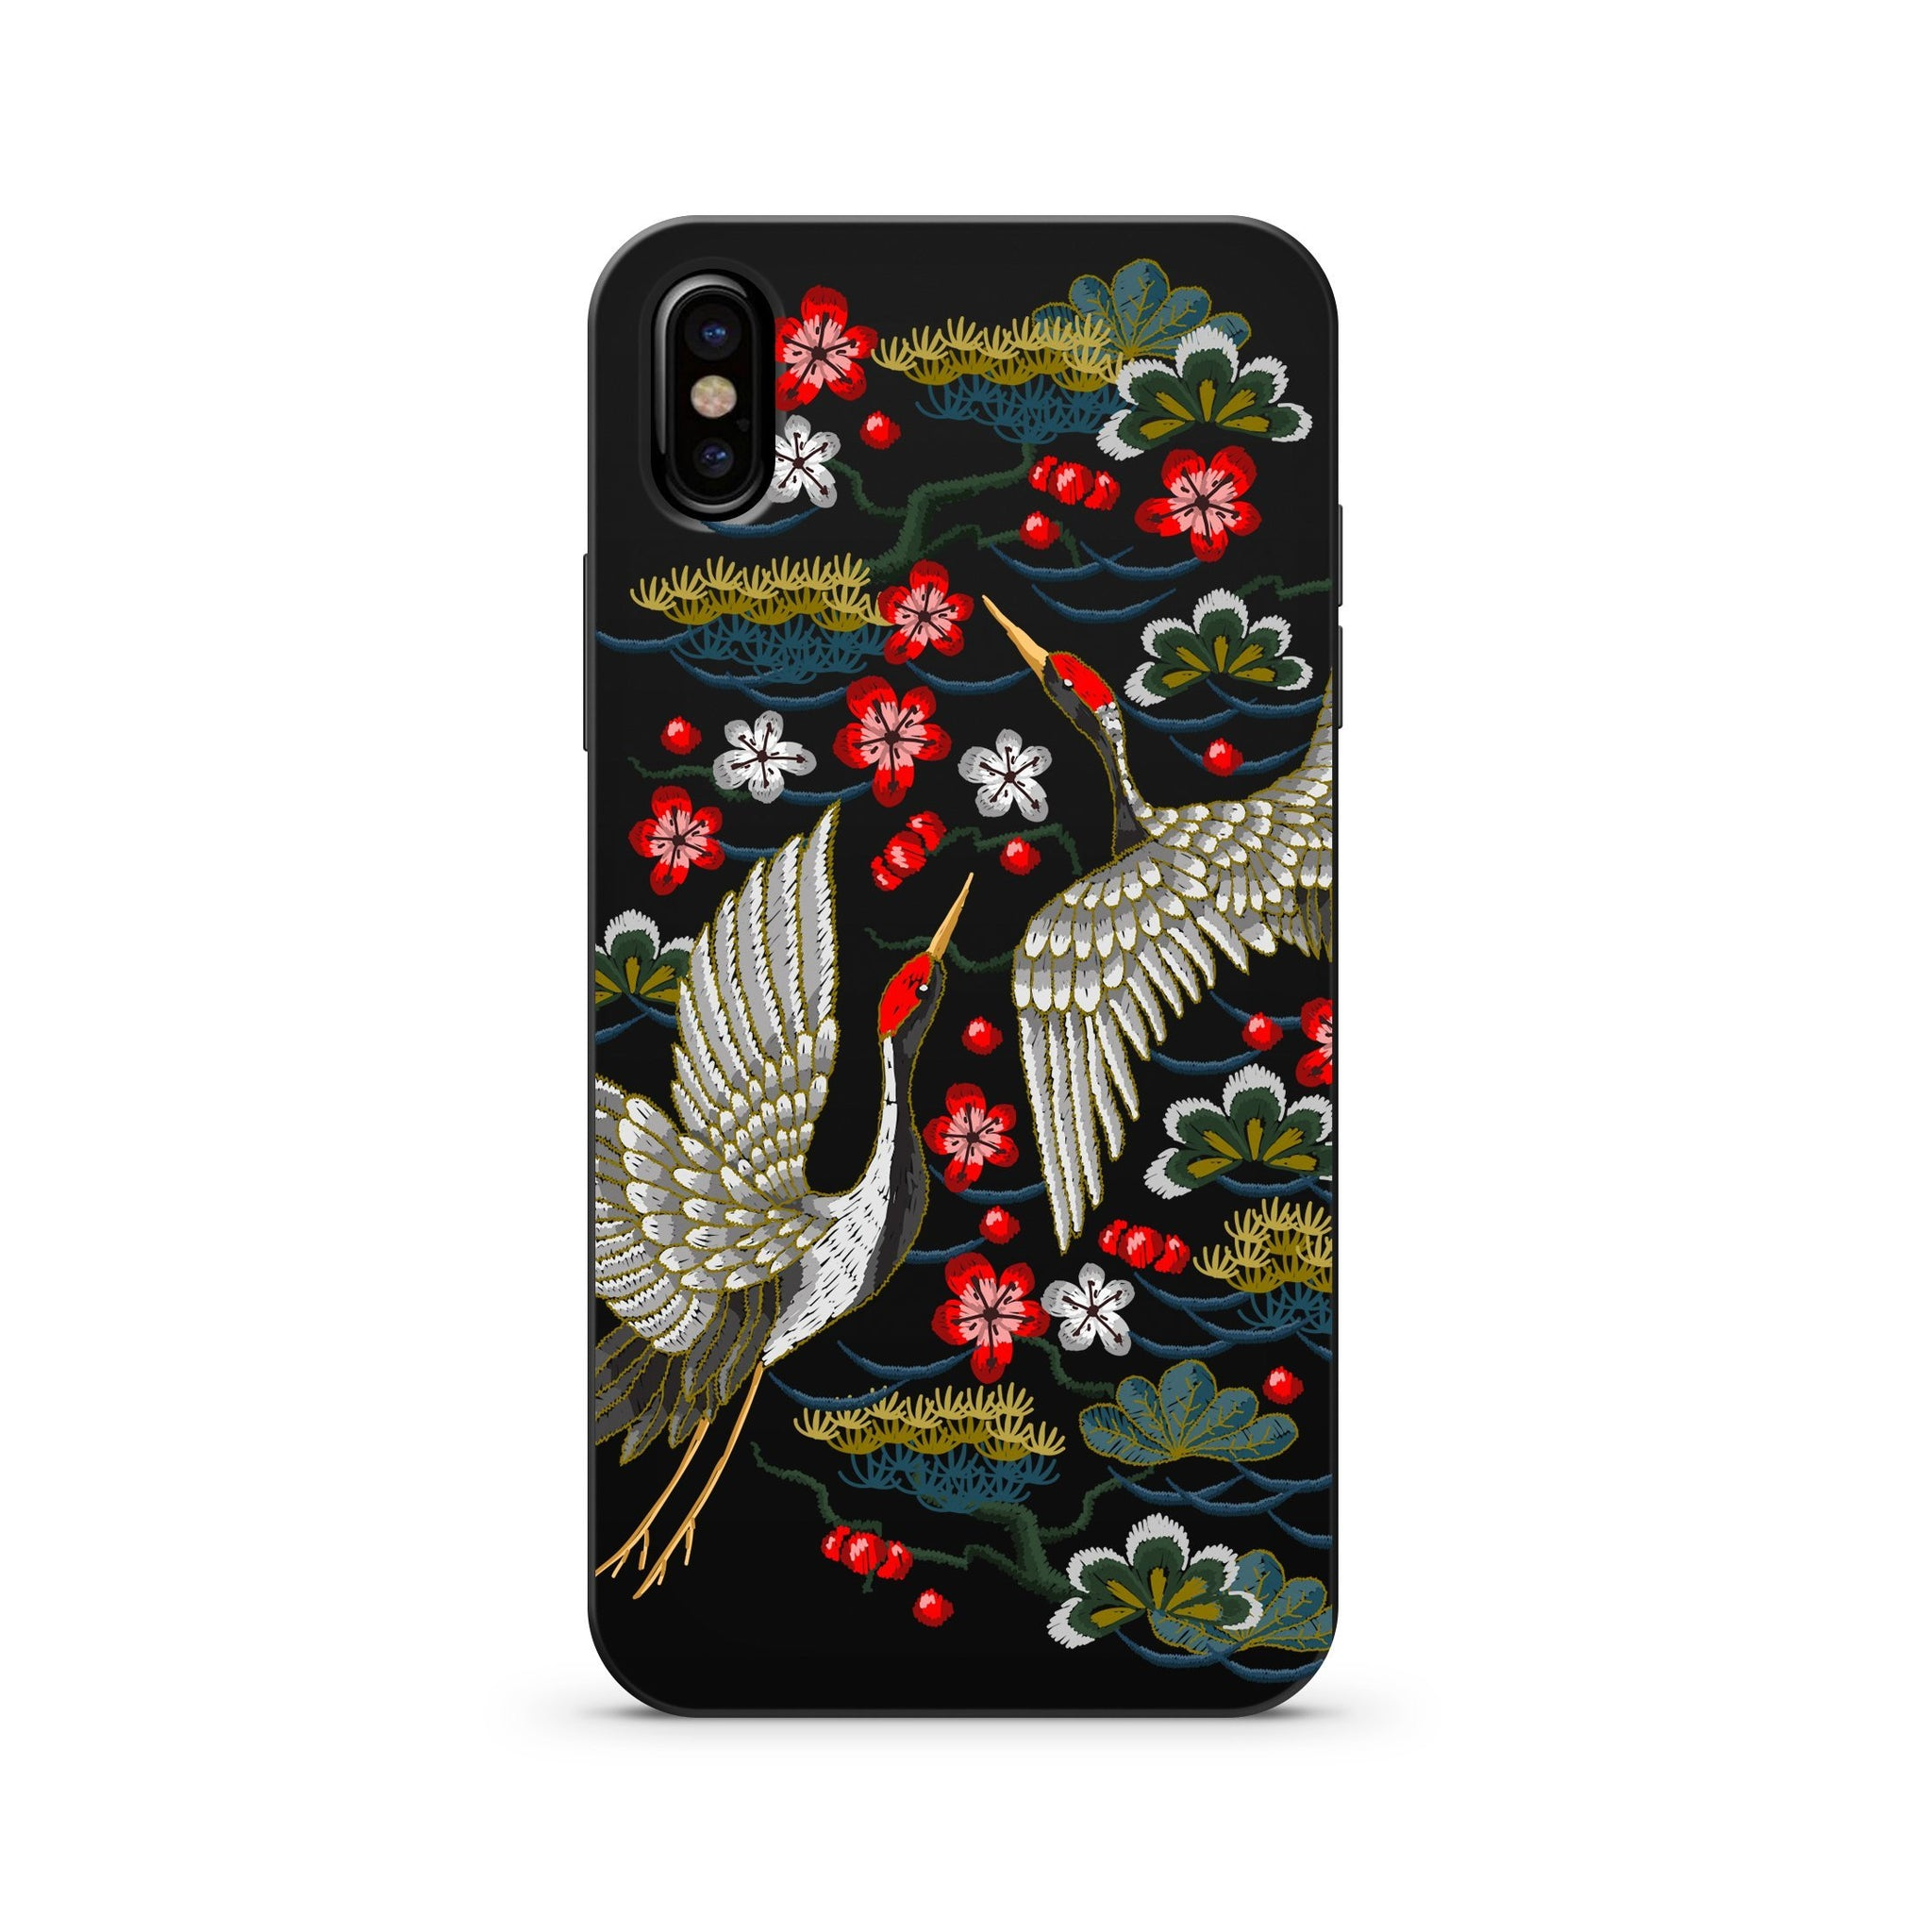 a7d2ee113d Black Wood Printed iPhone Case / Samsung Case Phone Cover - Japanese ...